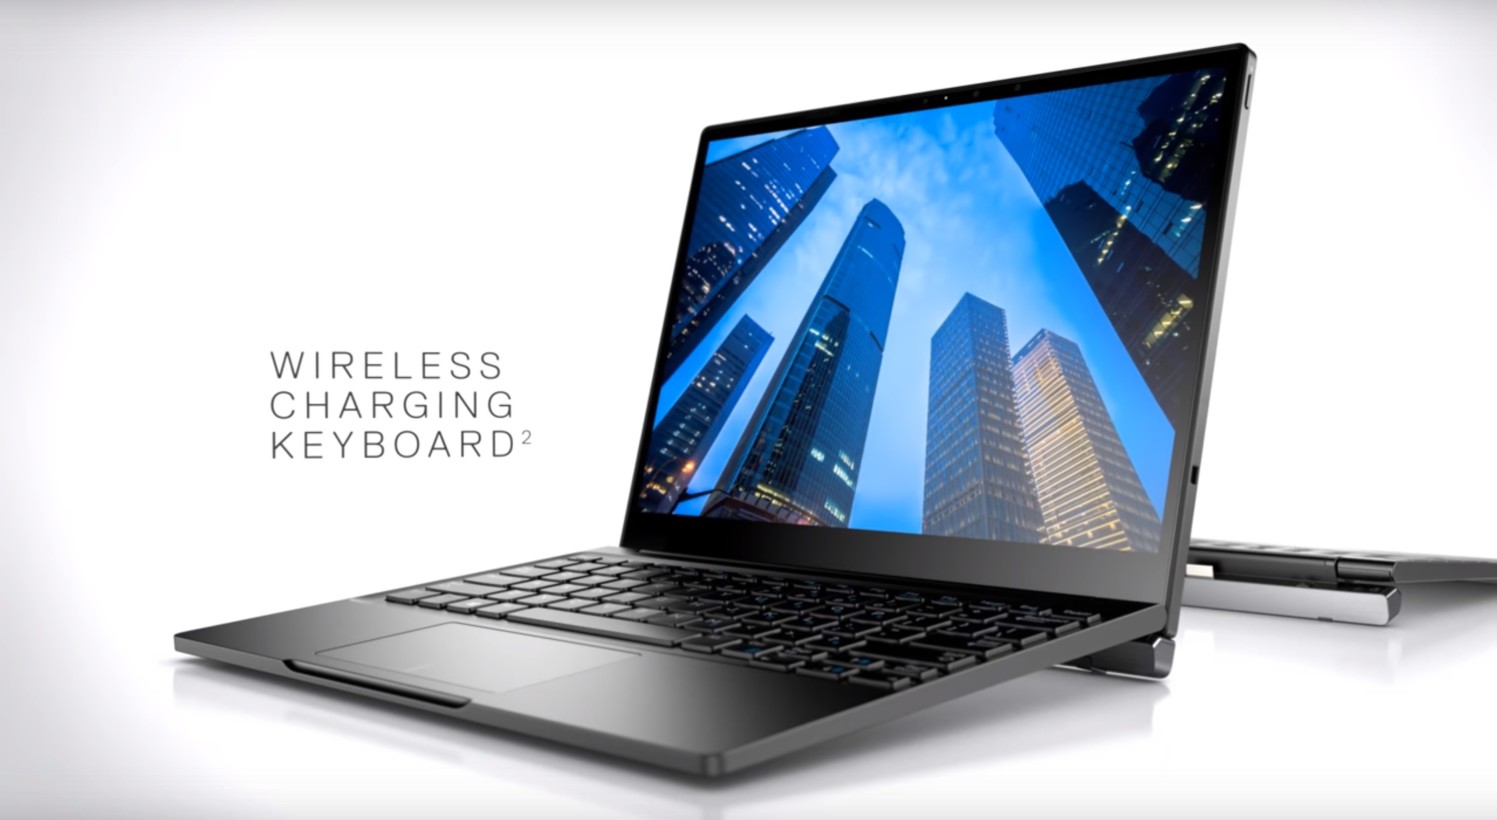 Dell's New Convertible Tablet Ditches the Power Cord